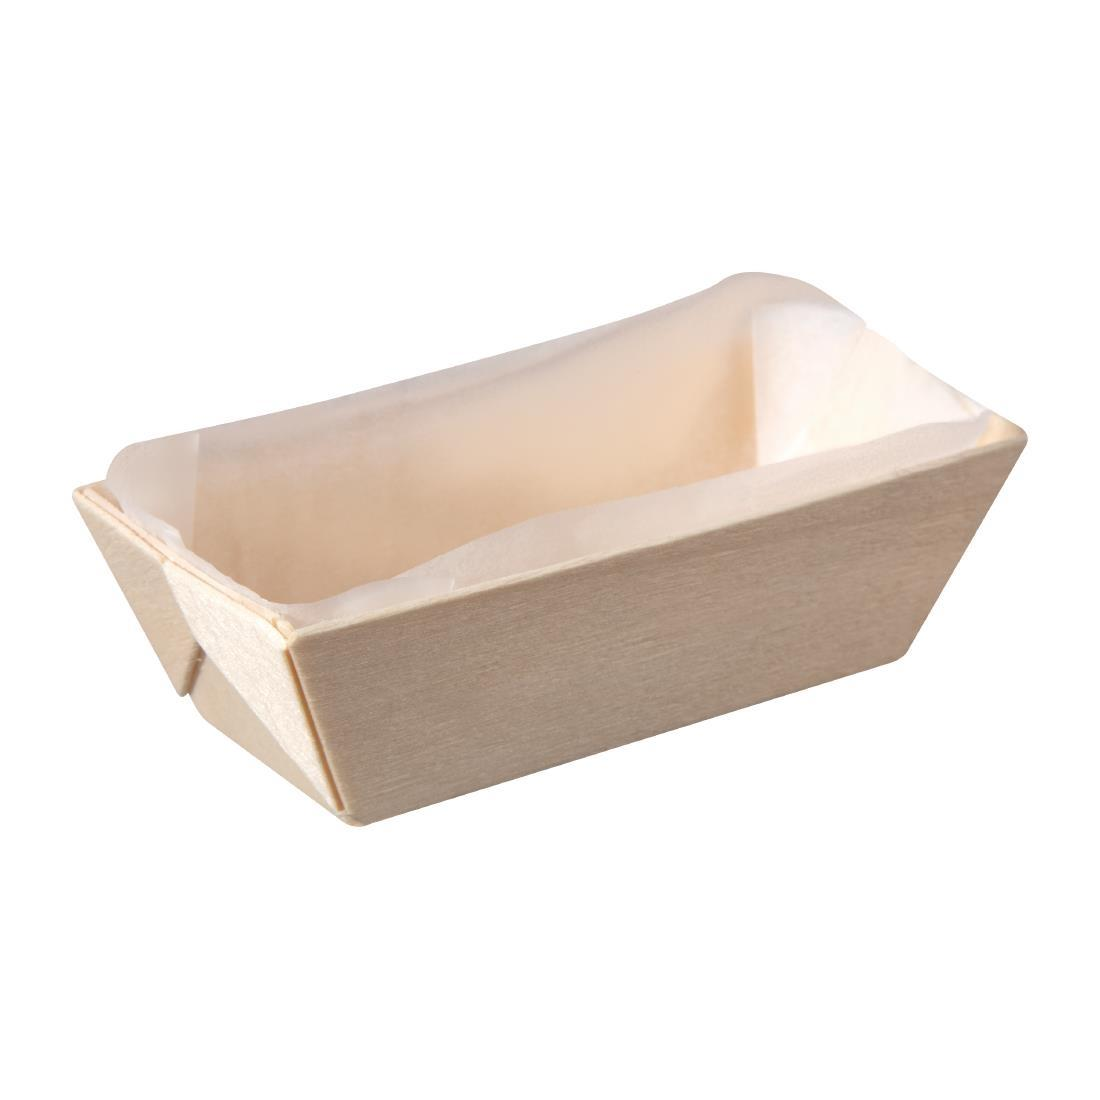 Wooden Baking Moulds